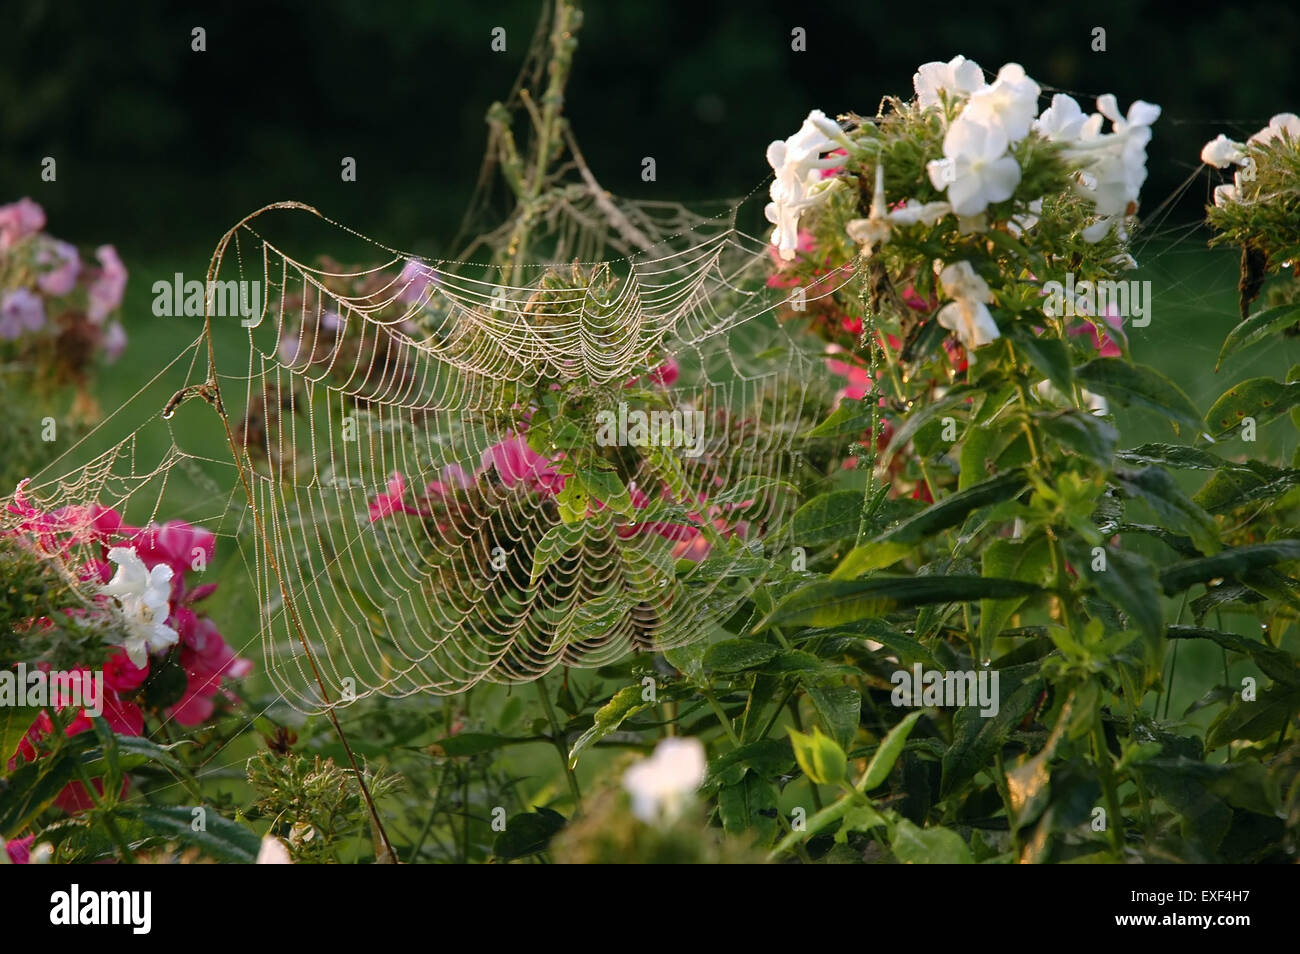 Closeup view of the strings of a cobweb with flowers - Stock Image